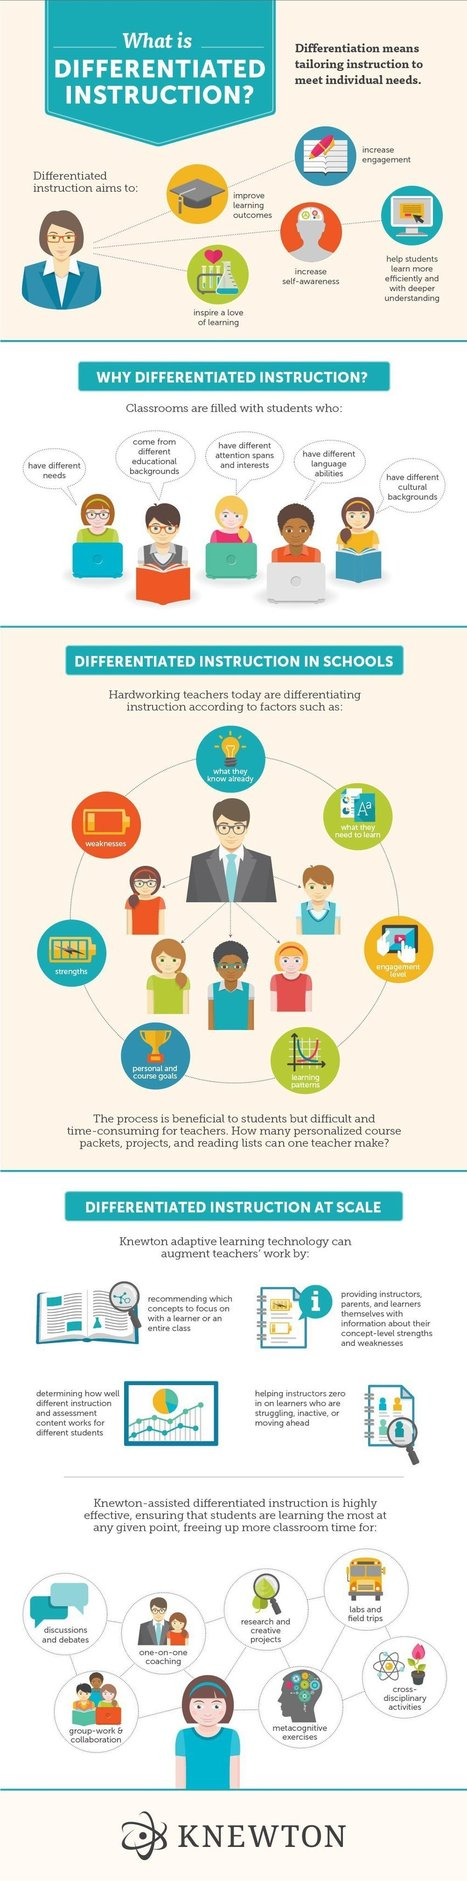 Differentiated Instruction and Adaptive Learning Infographic - e-Learning Infographics | UDL & ICT in education | Scoop.it